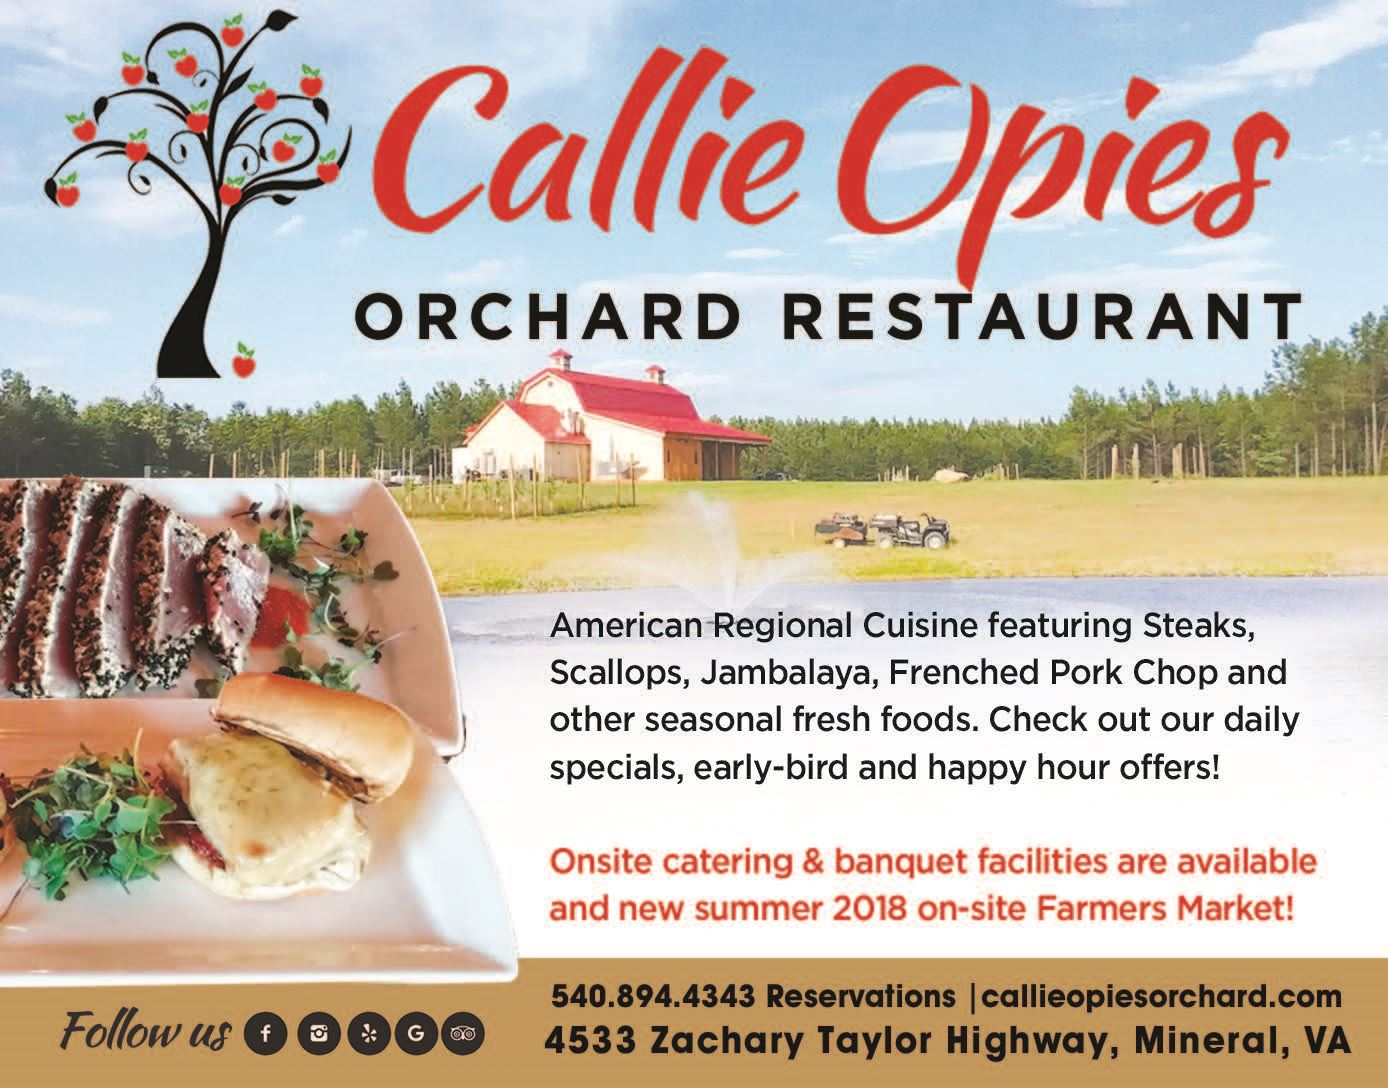 Callie Opies Orchard - Menu